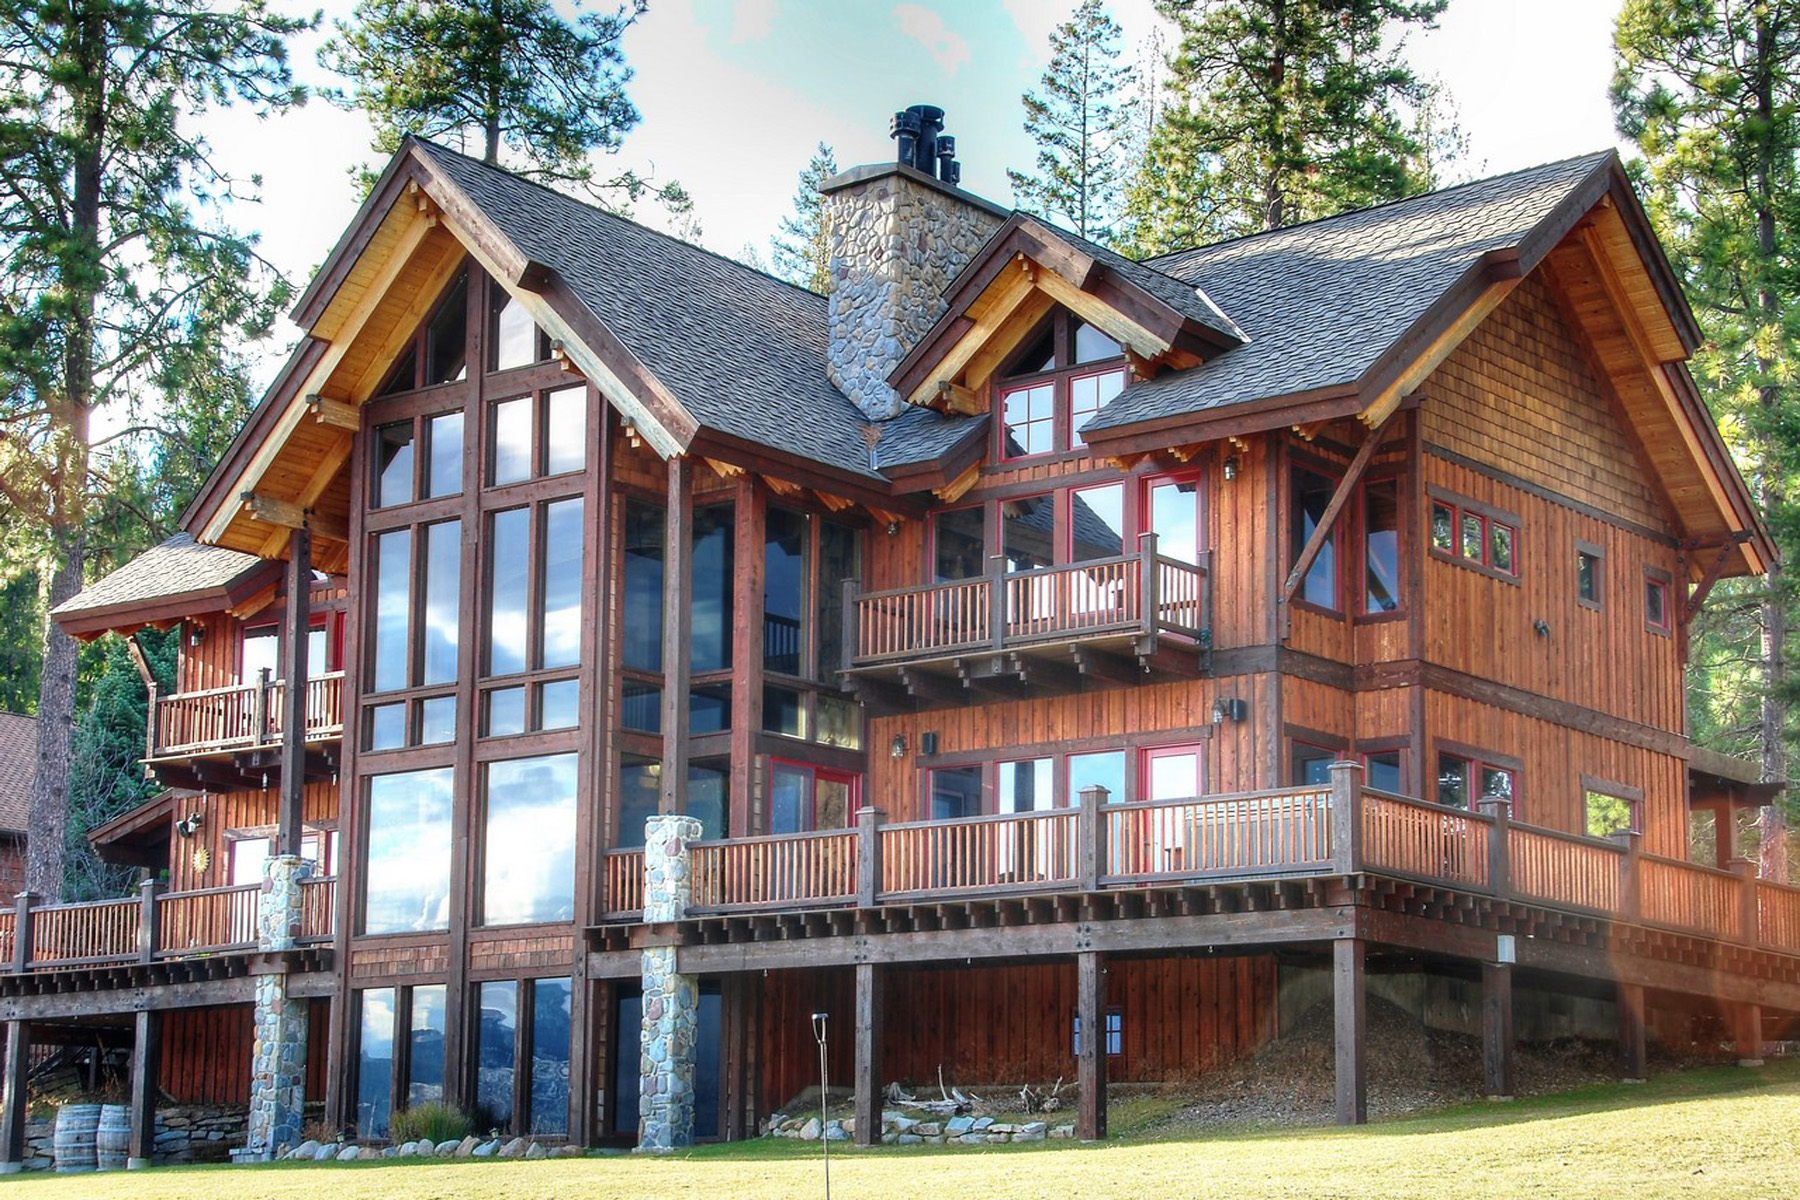 Single Family Home for Sale at Magnificent views of Lake Pend Oreille 107 Driftwood Shore Sagle, Idaho 83860 United States